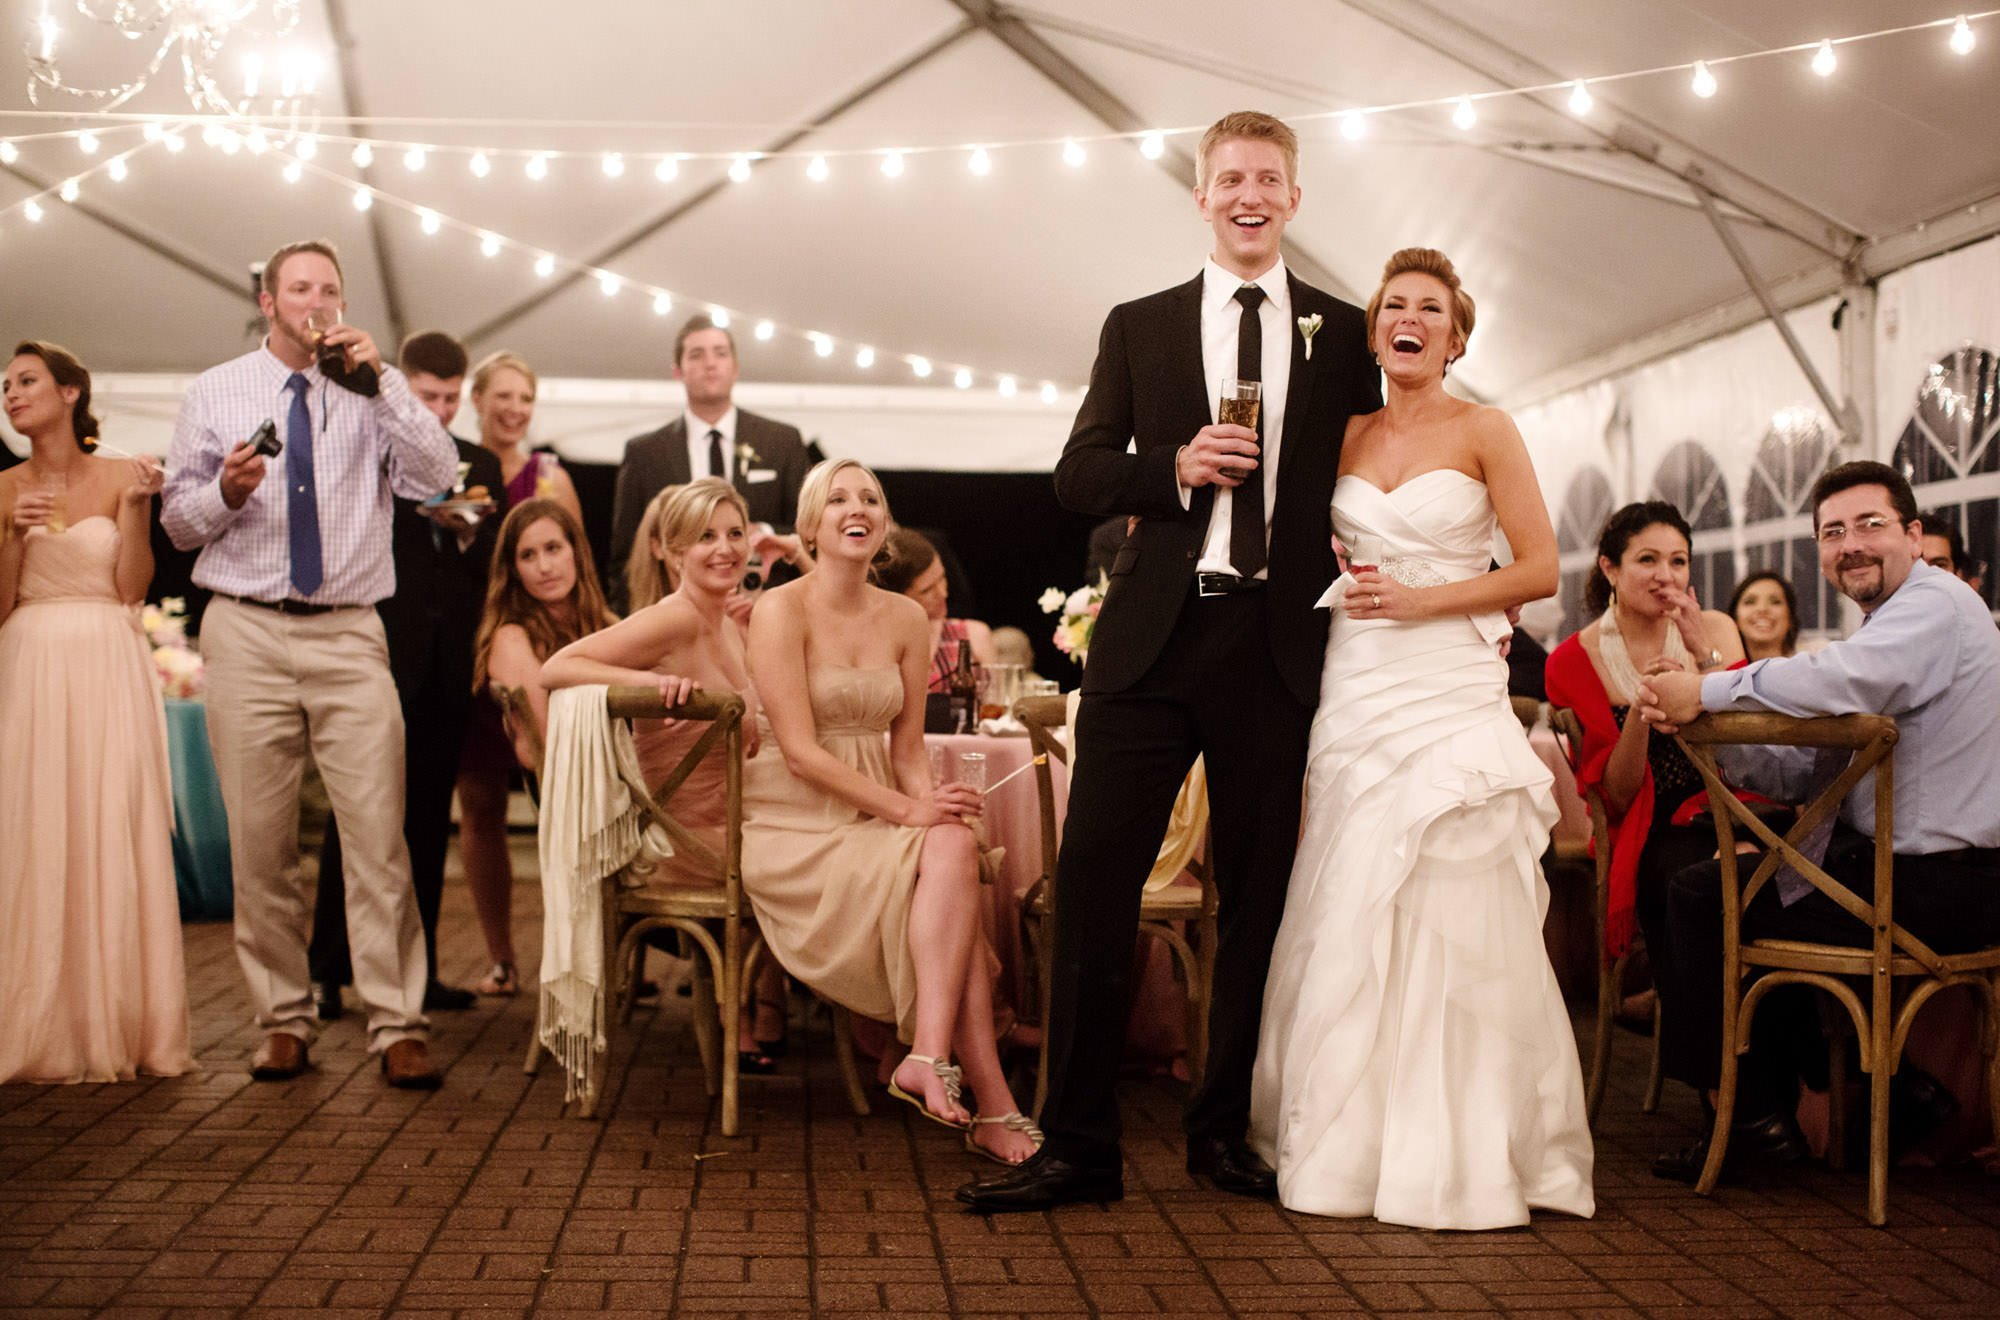 The bride and groom listen to toasts during the tented reception of their Oxon Hill Manor wedding.